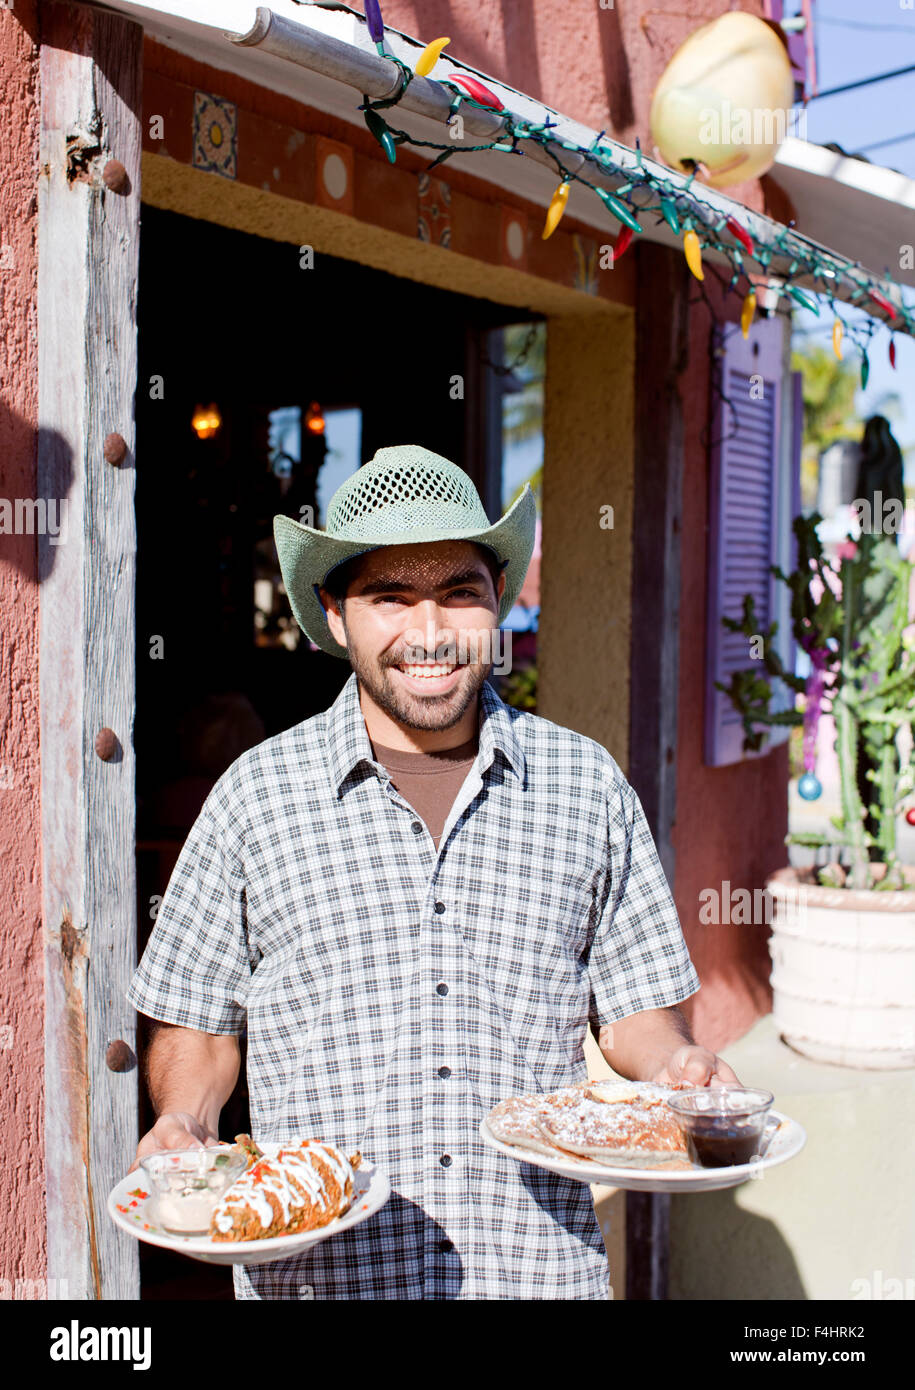 Mango Cafe co-owner Polo Avila stands outside his restaurant. Isla Mujeres, Quintana Roo, Mexico. - Stock Image